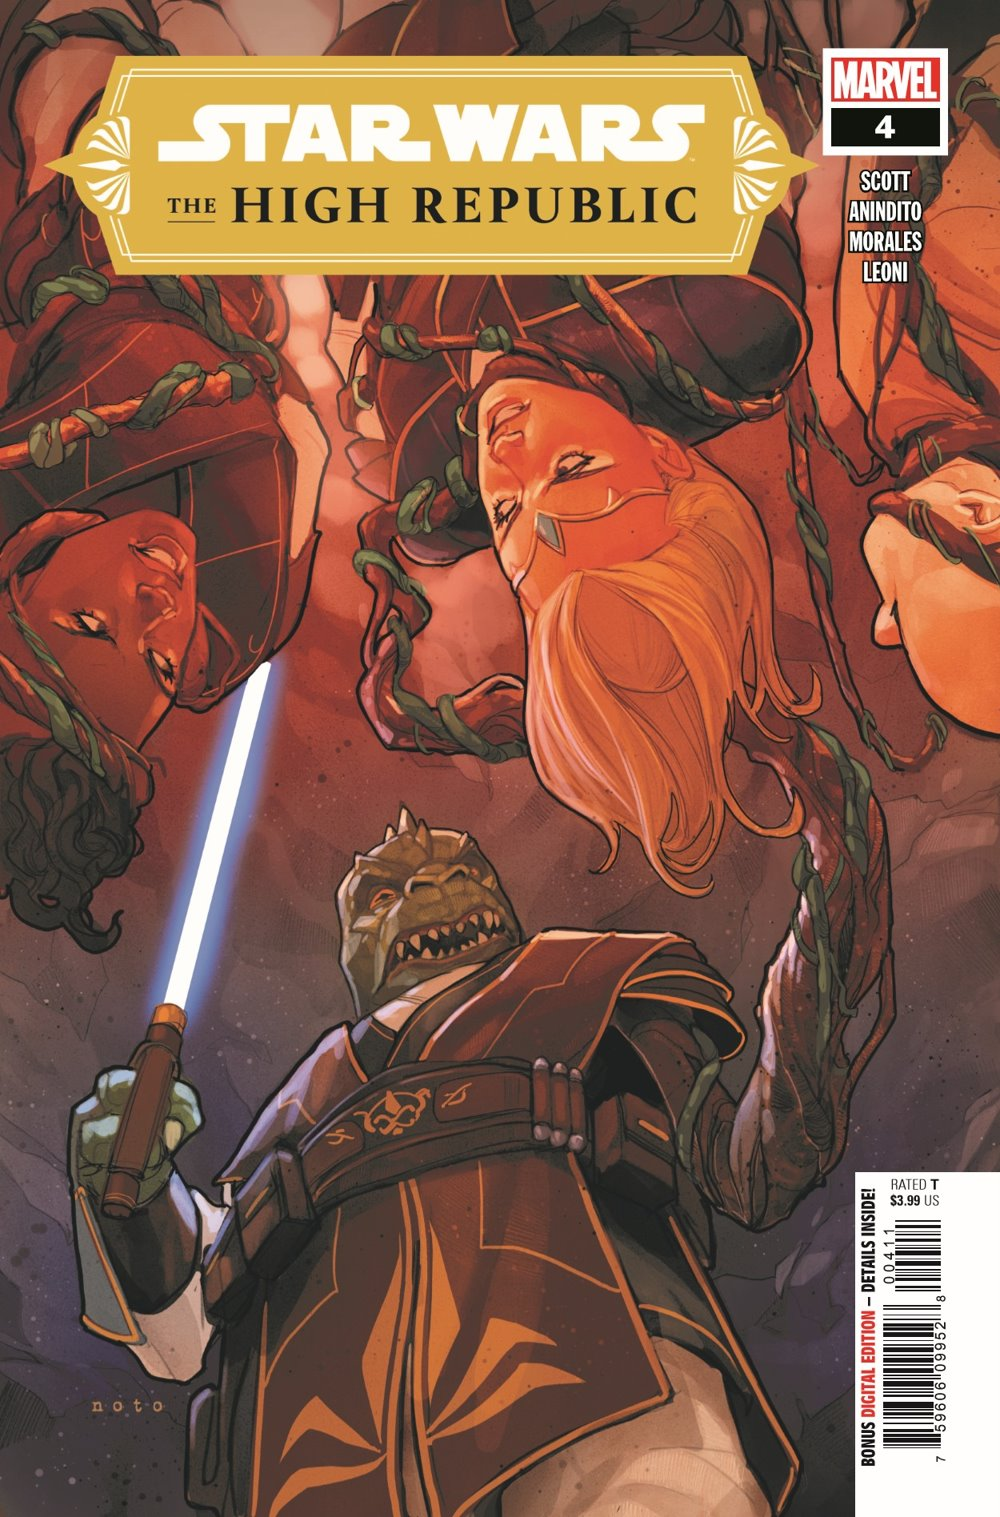 STWHIGHREP2021004_Preview-1 ComicList Previews: STAR WARS THE HIGH REPUBLIC #4